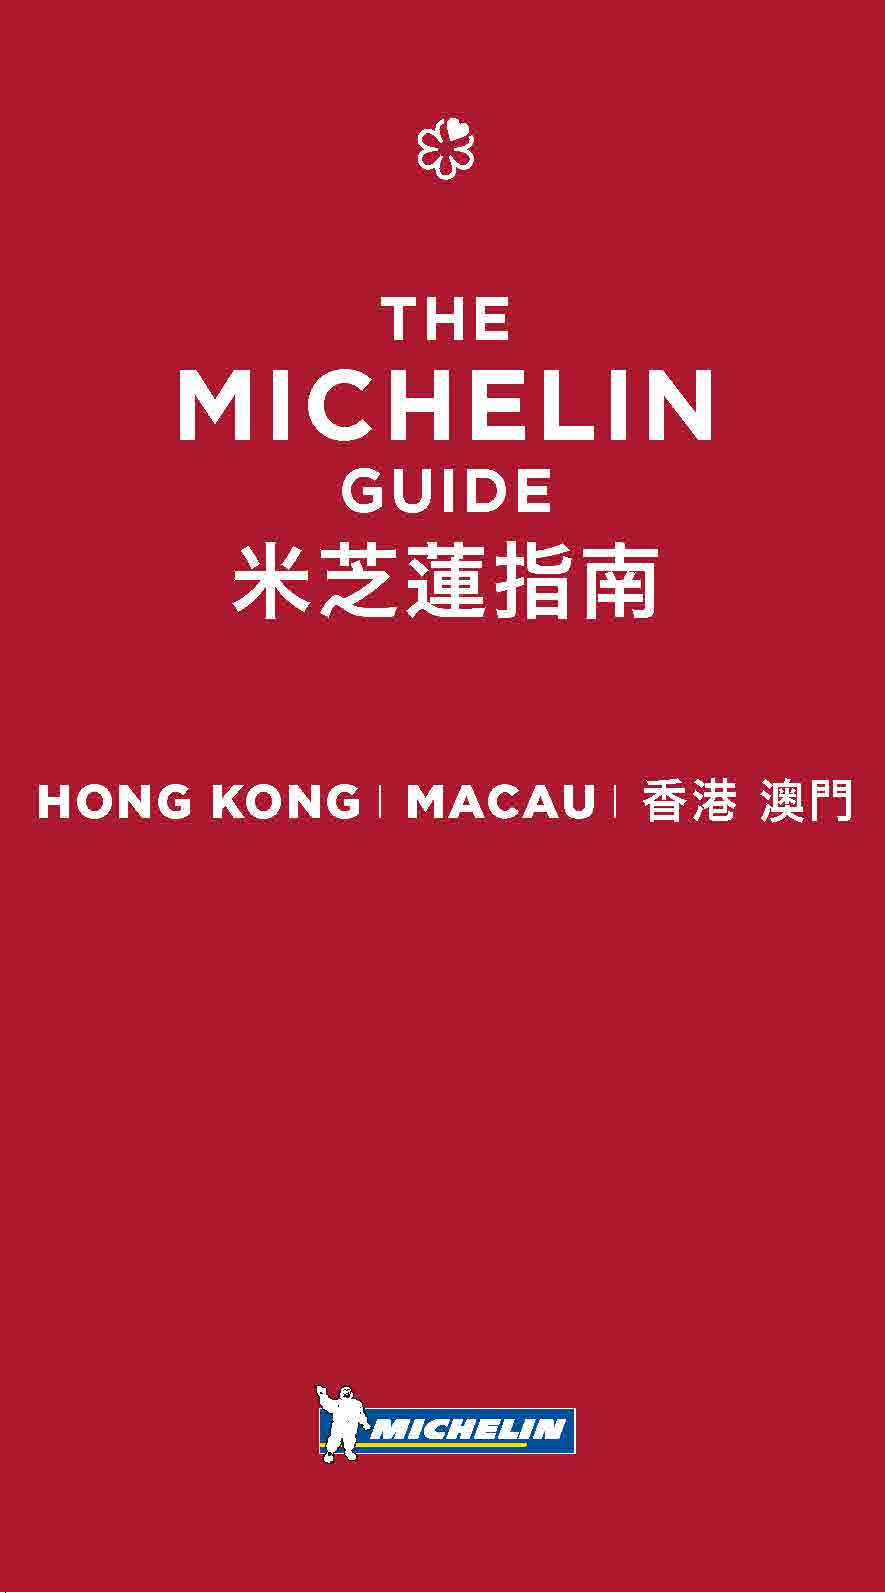 The cover of the MICHELIN Guide Hong Kong Macau